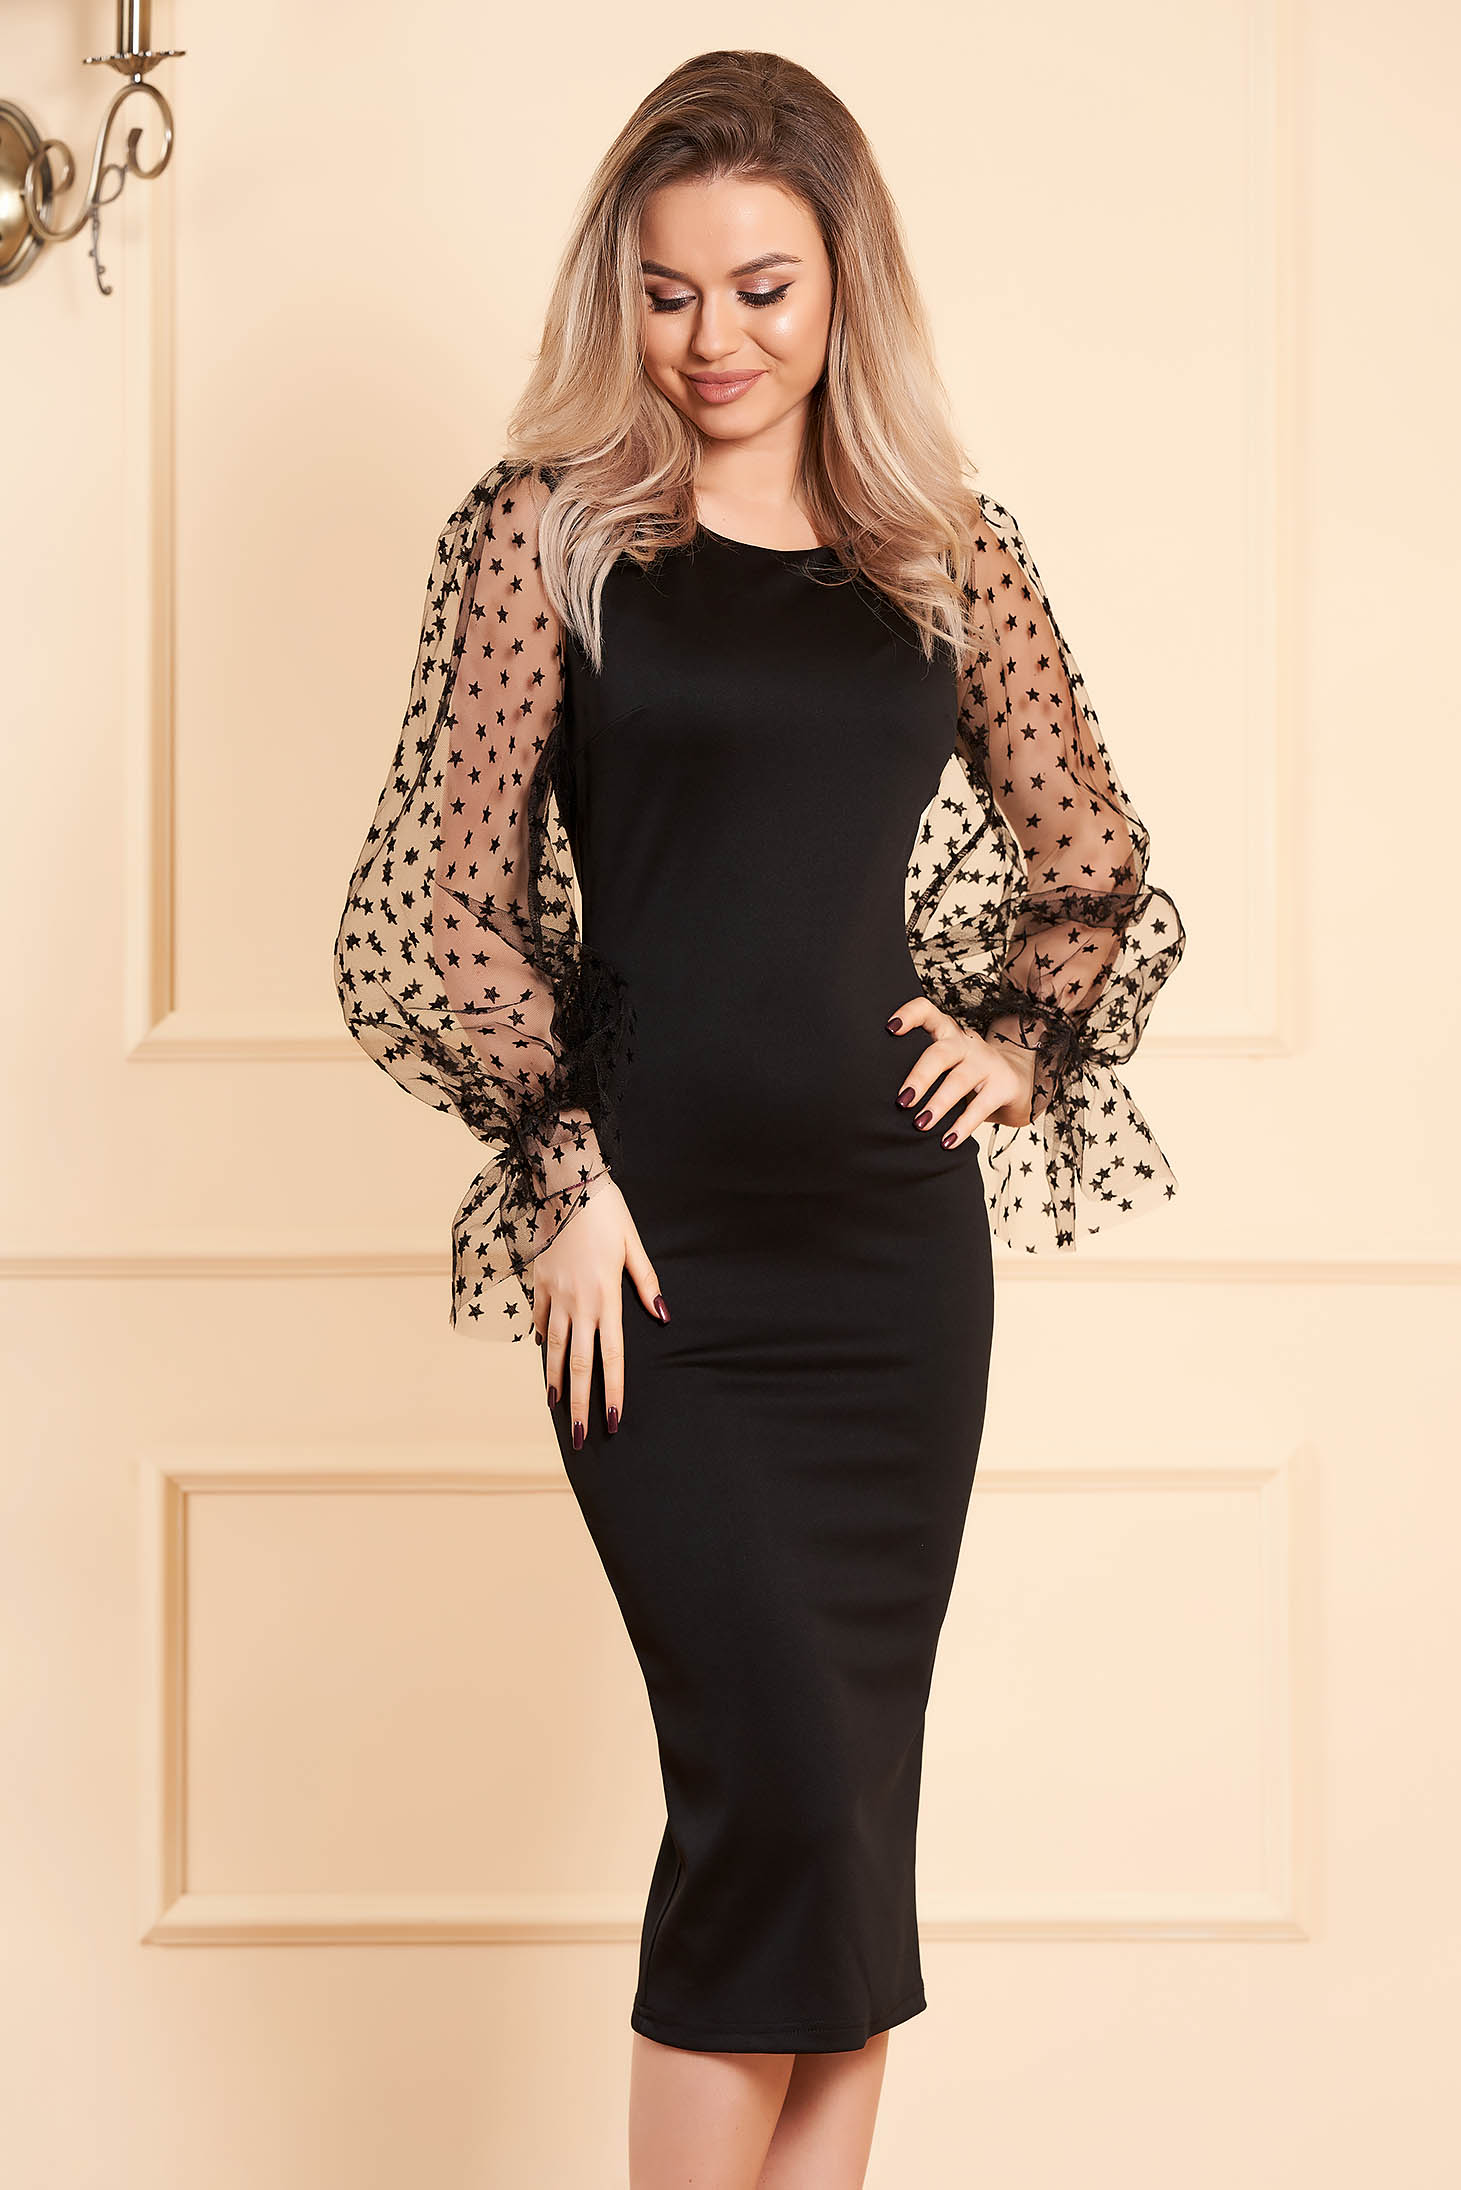 Black dress midi pencil with rounded cleavage slightly elastic fabric long sleeved transparent sleeves occasional